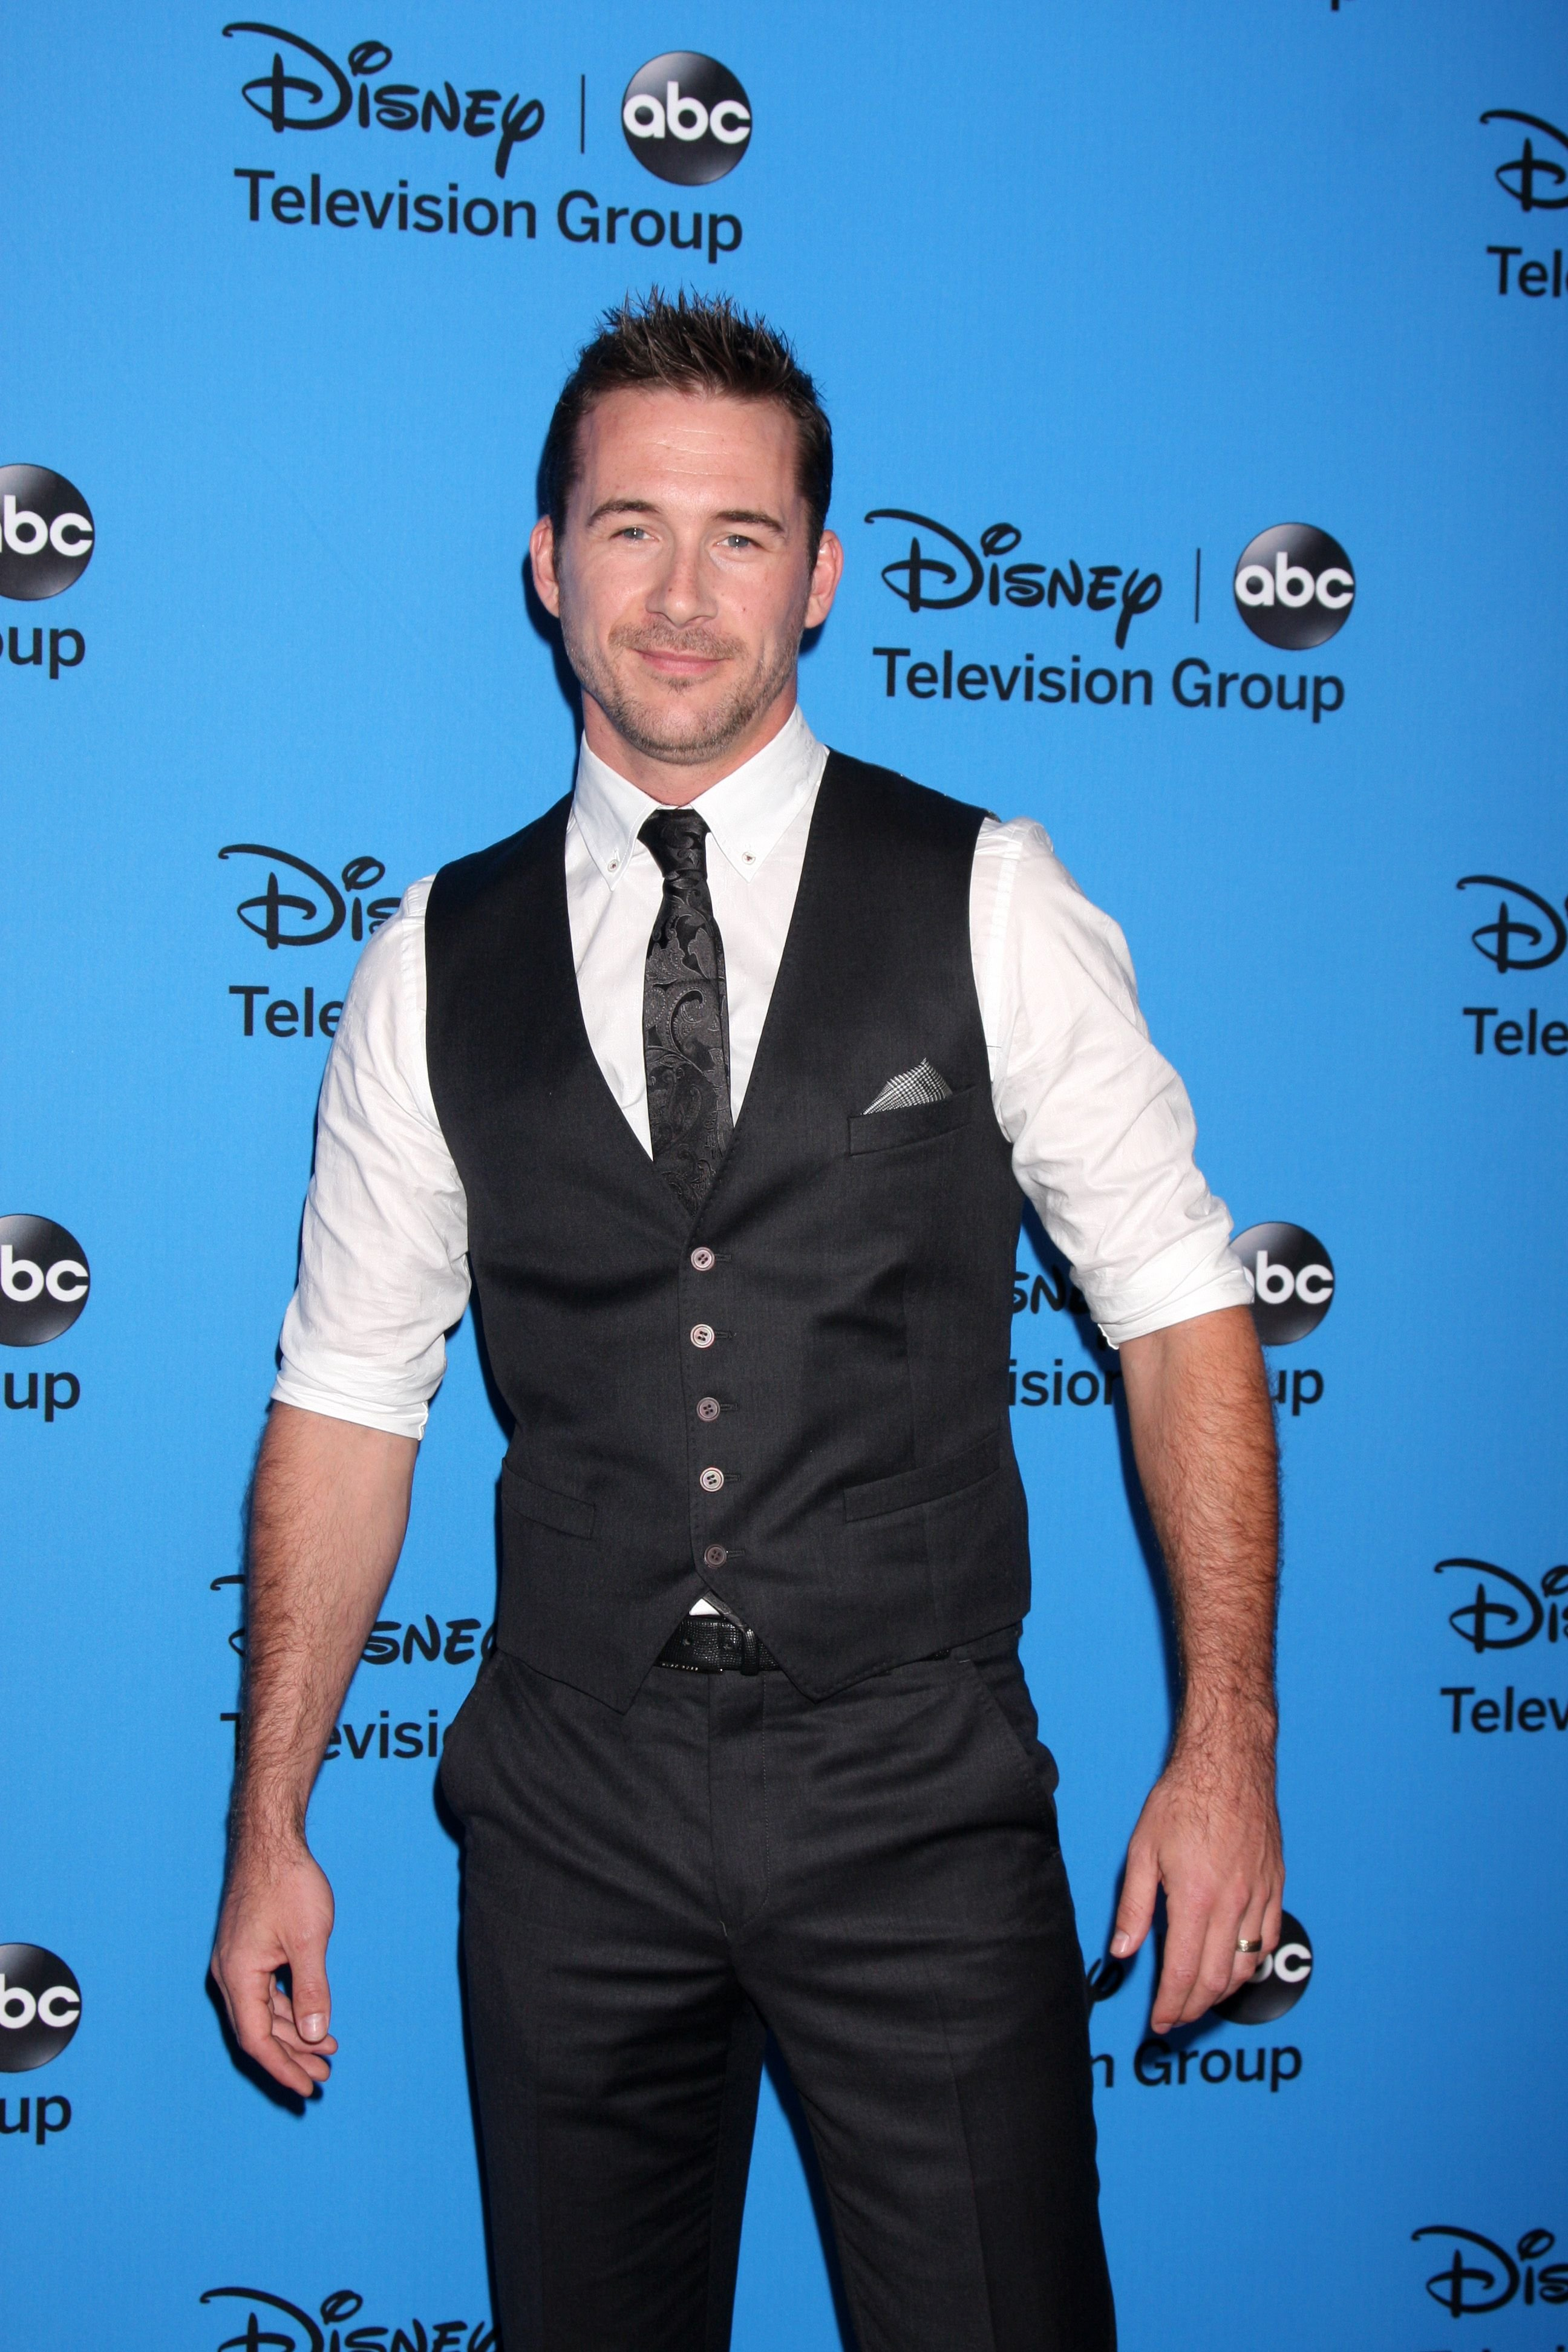 Barry Sloane arrives at the ABC Summer 2013 TCA Party at the Beverly Hilton Hotel on August 4, 2013 in Beverly Hills, CA. | Source: Shutterstock